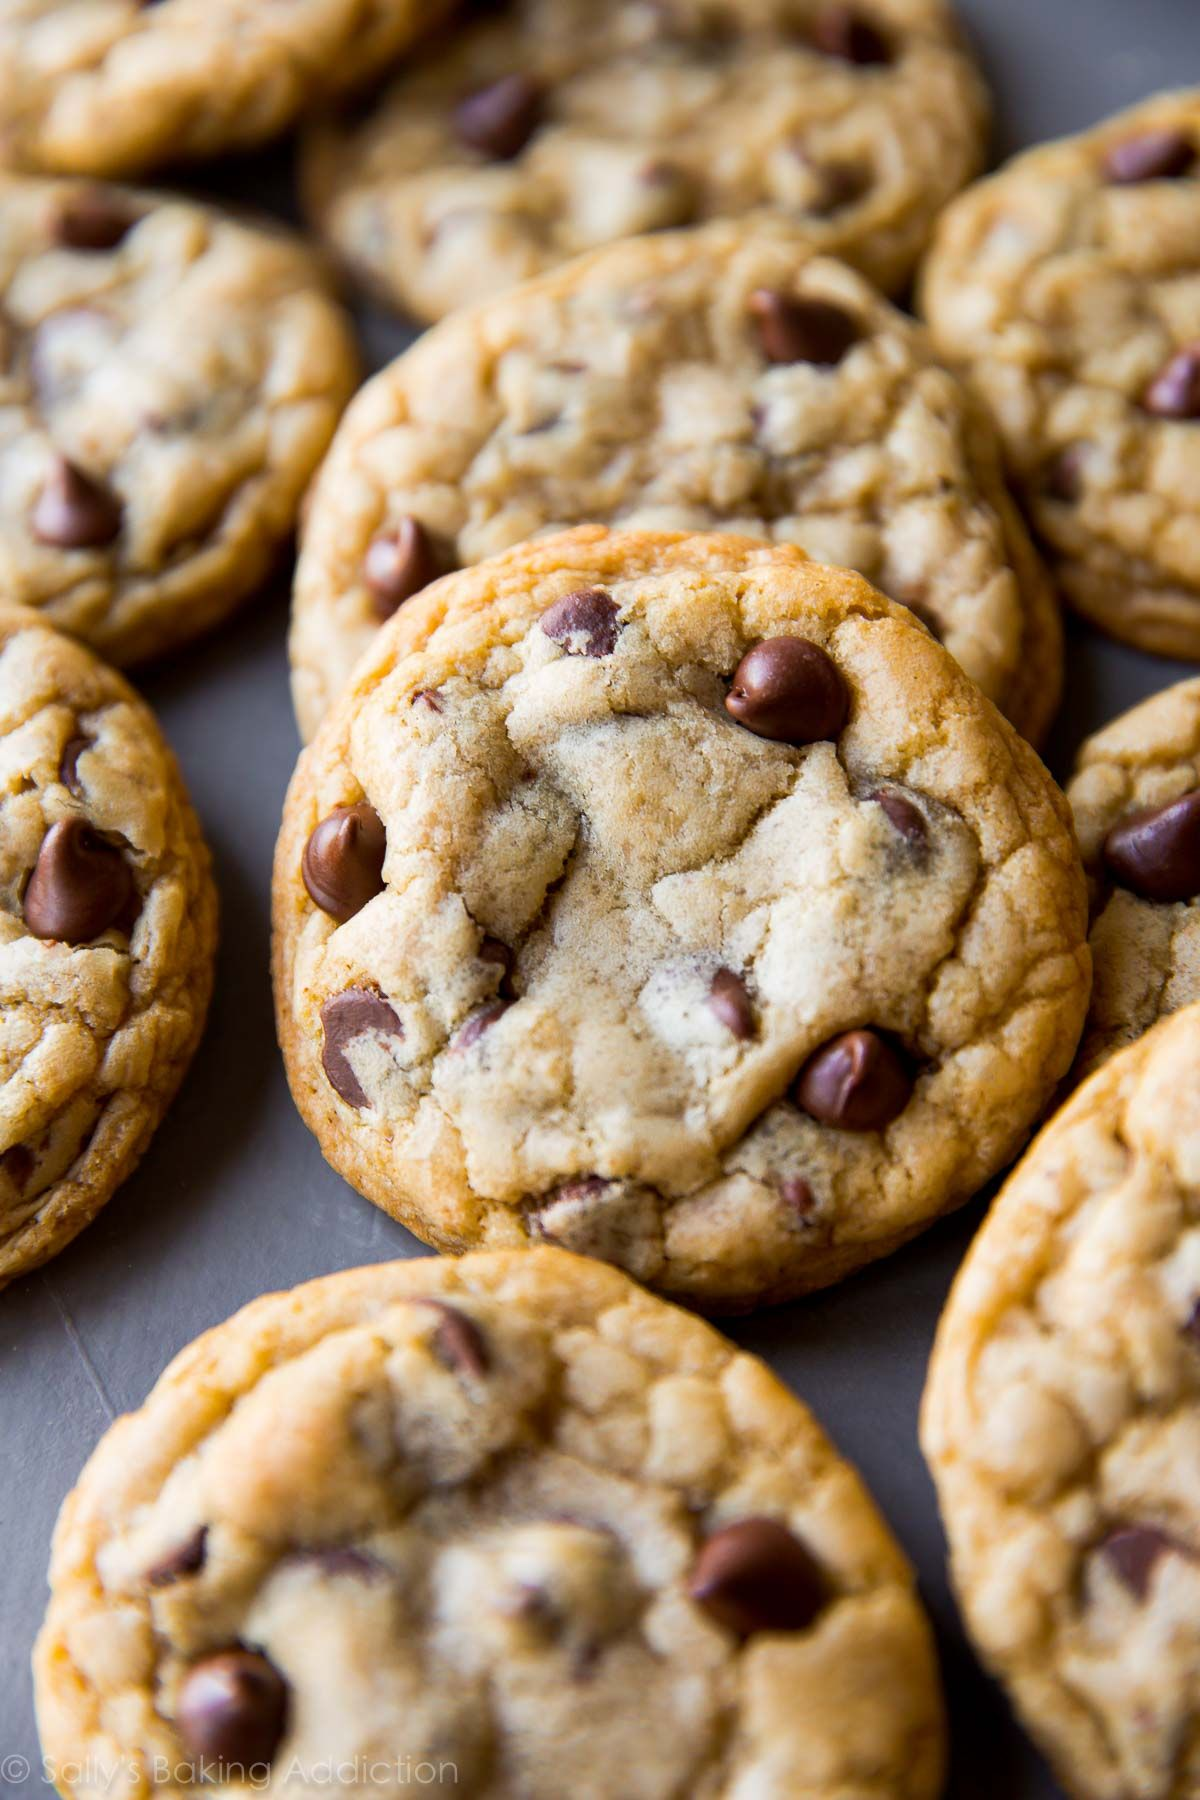 3rd Cookbook | Sallys baking addiction, Chocolate chips and Chips